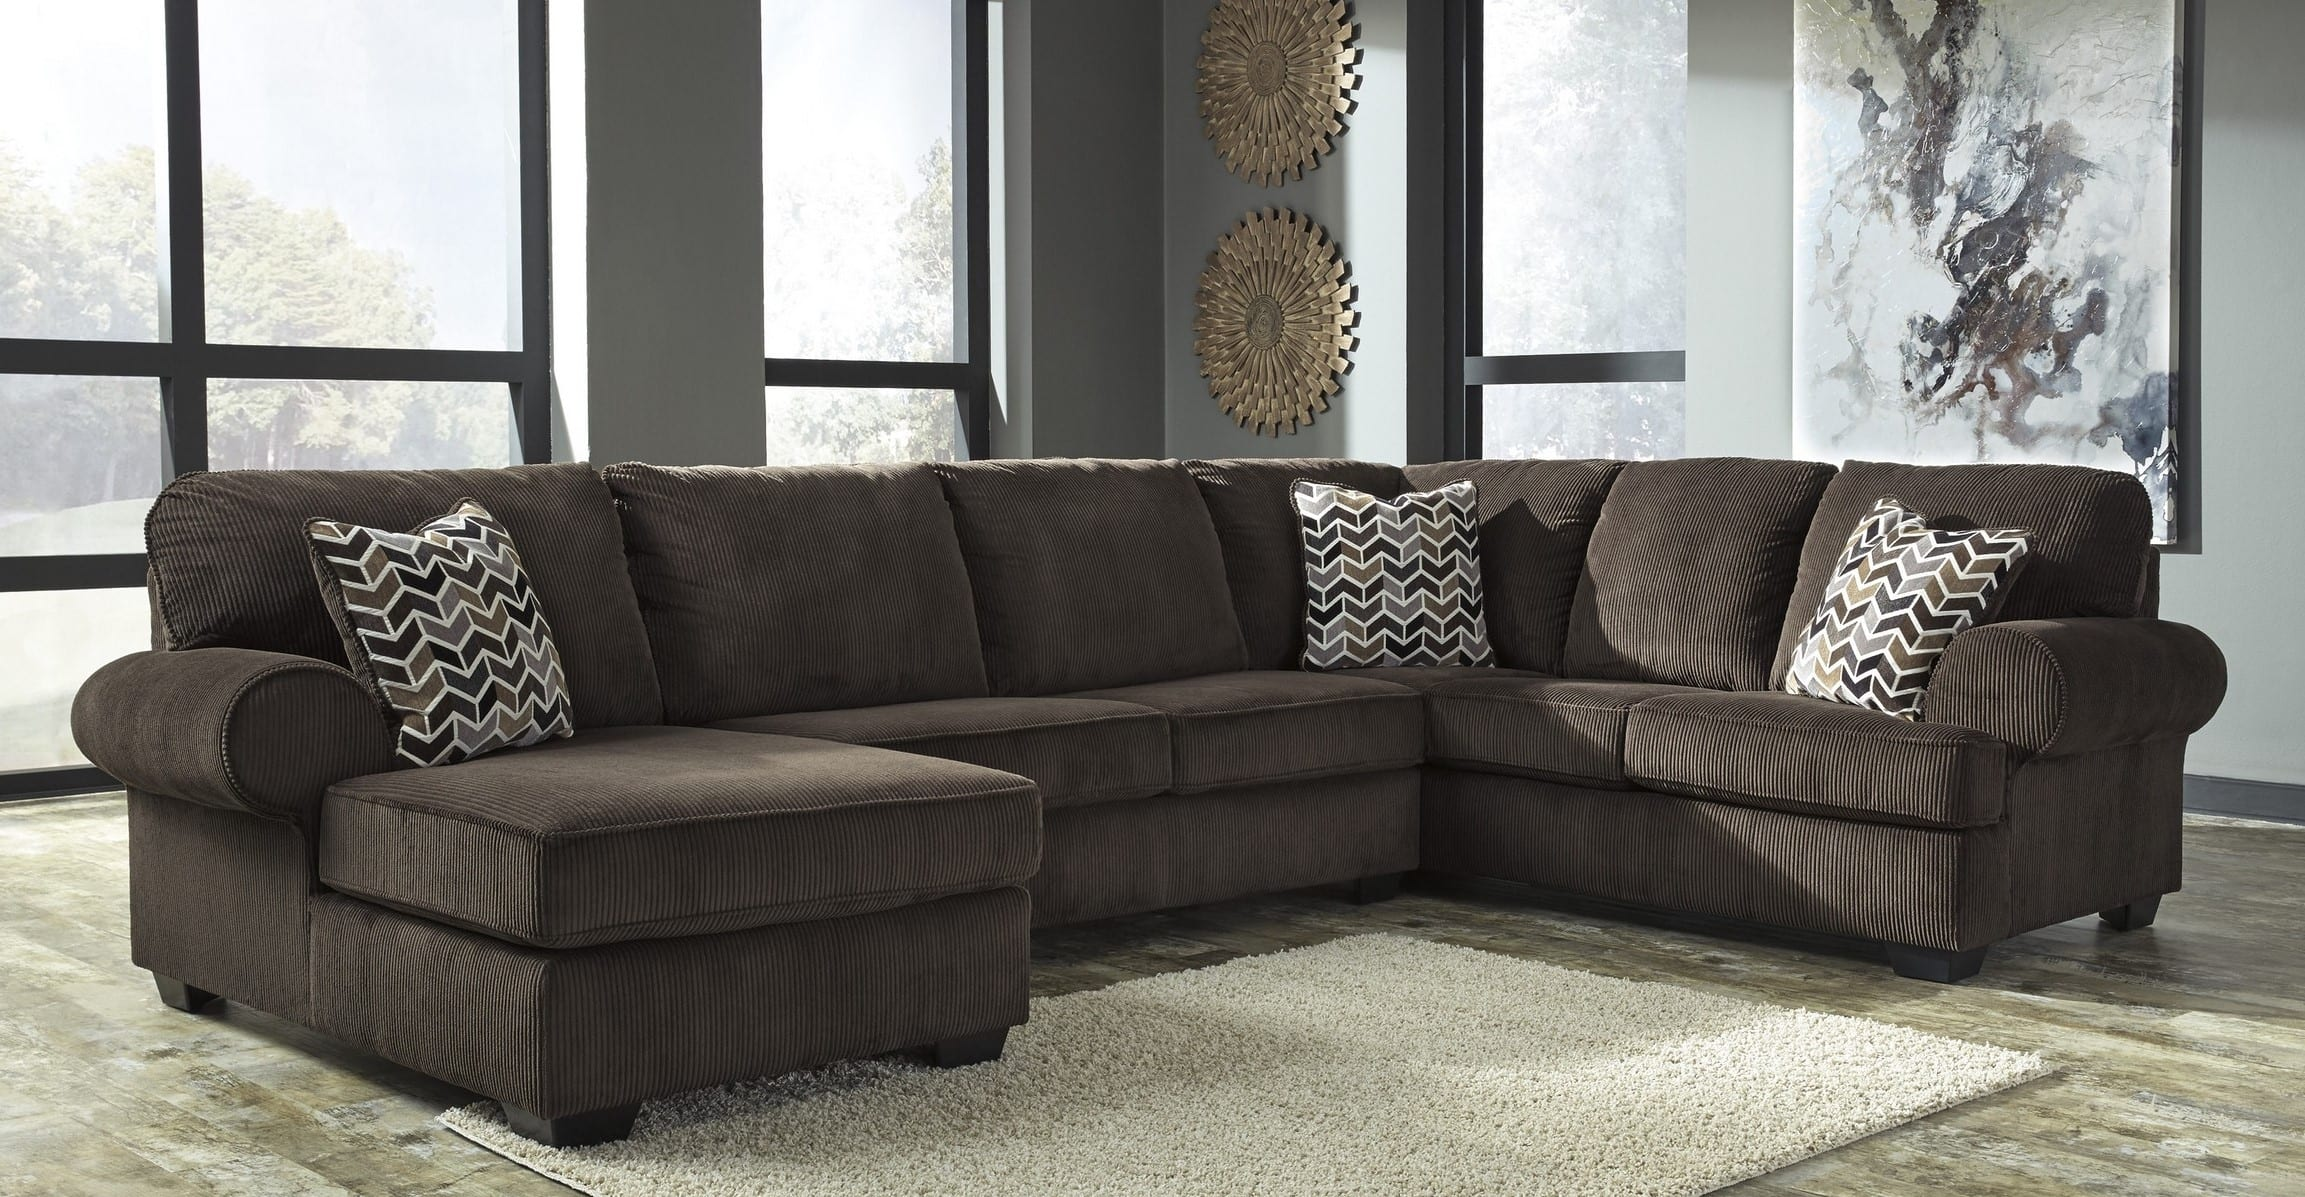 Signature Design By Ashley Jinllingsly Chocolate 3 Piece Sectional